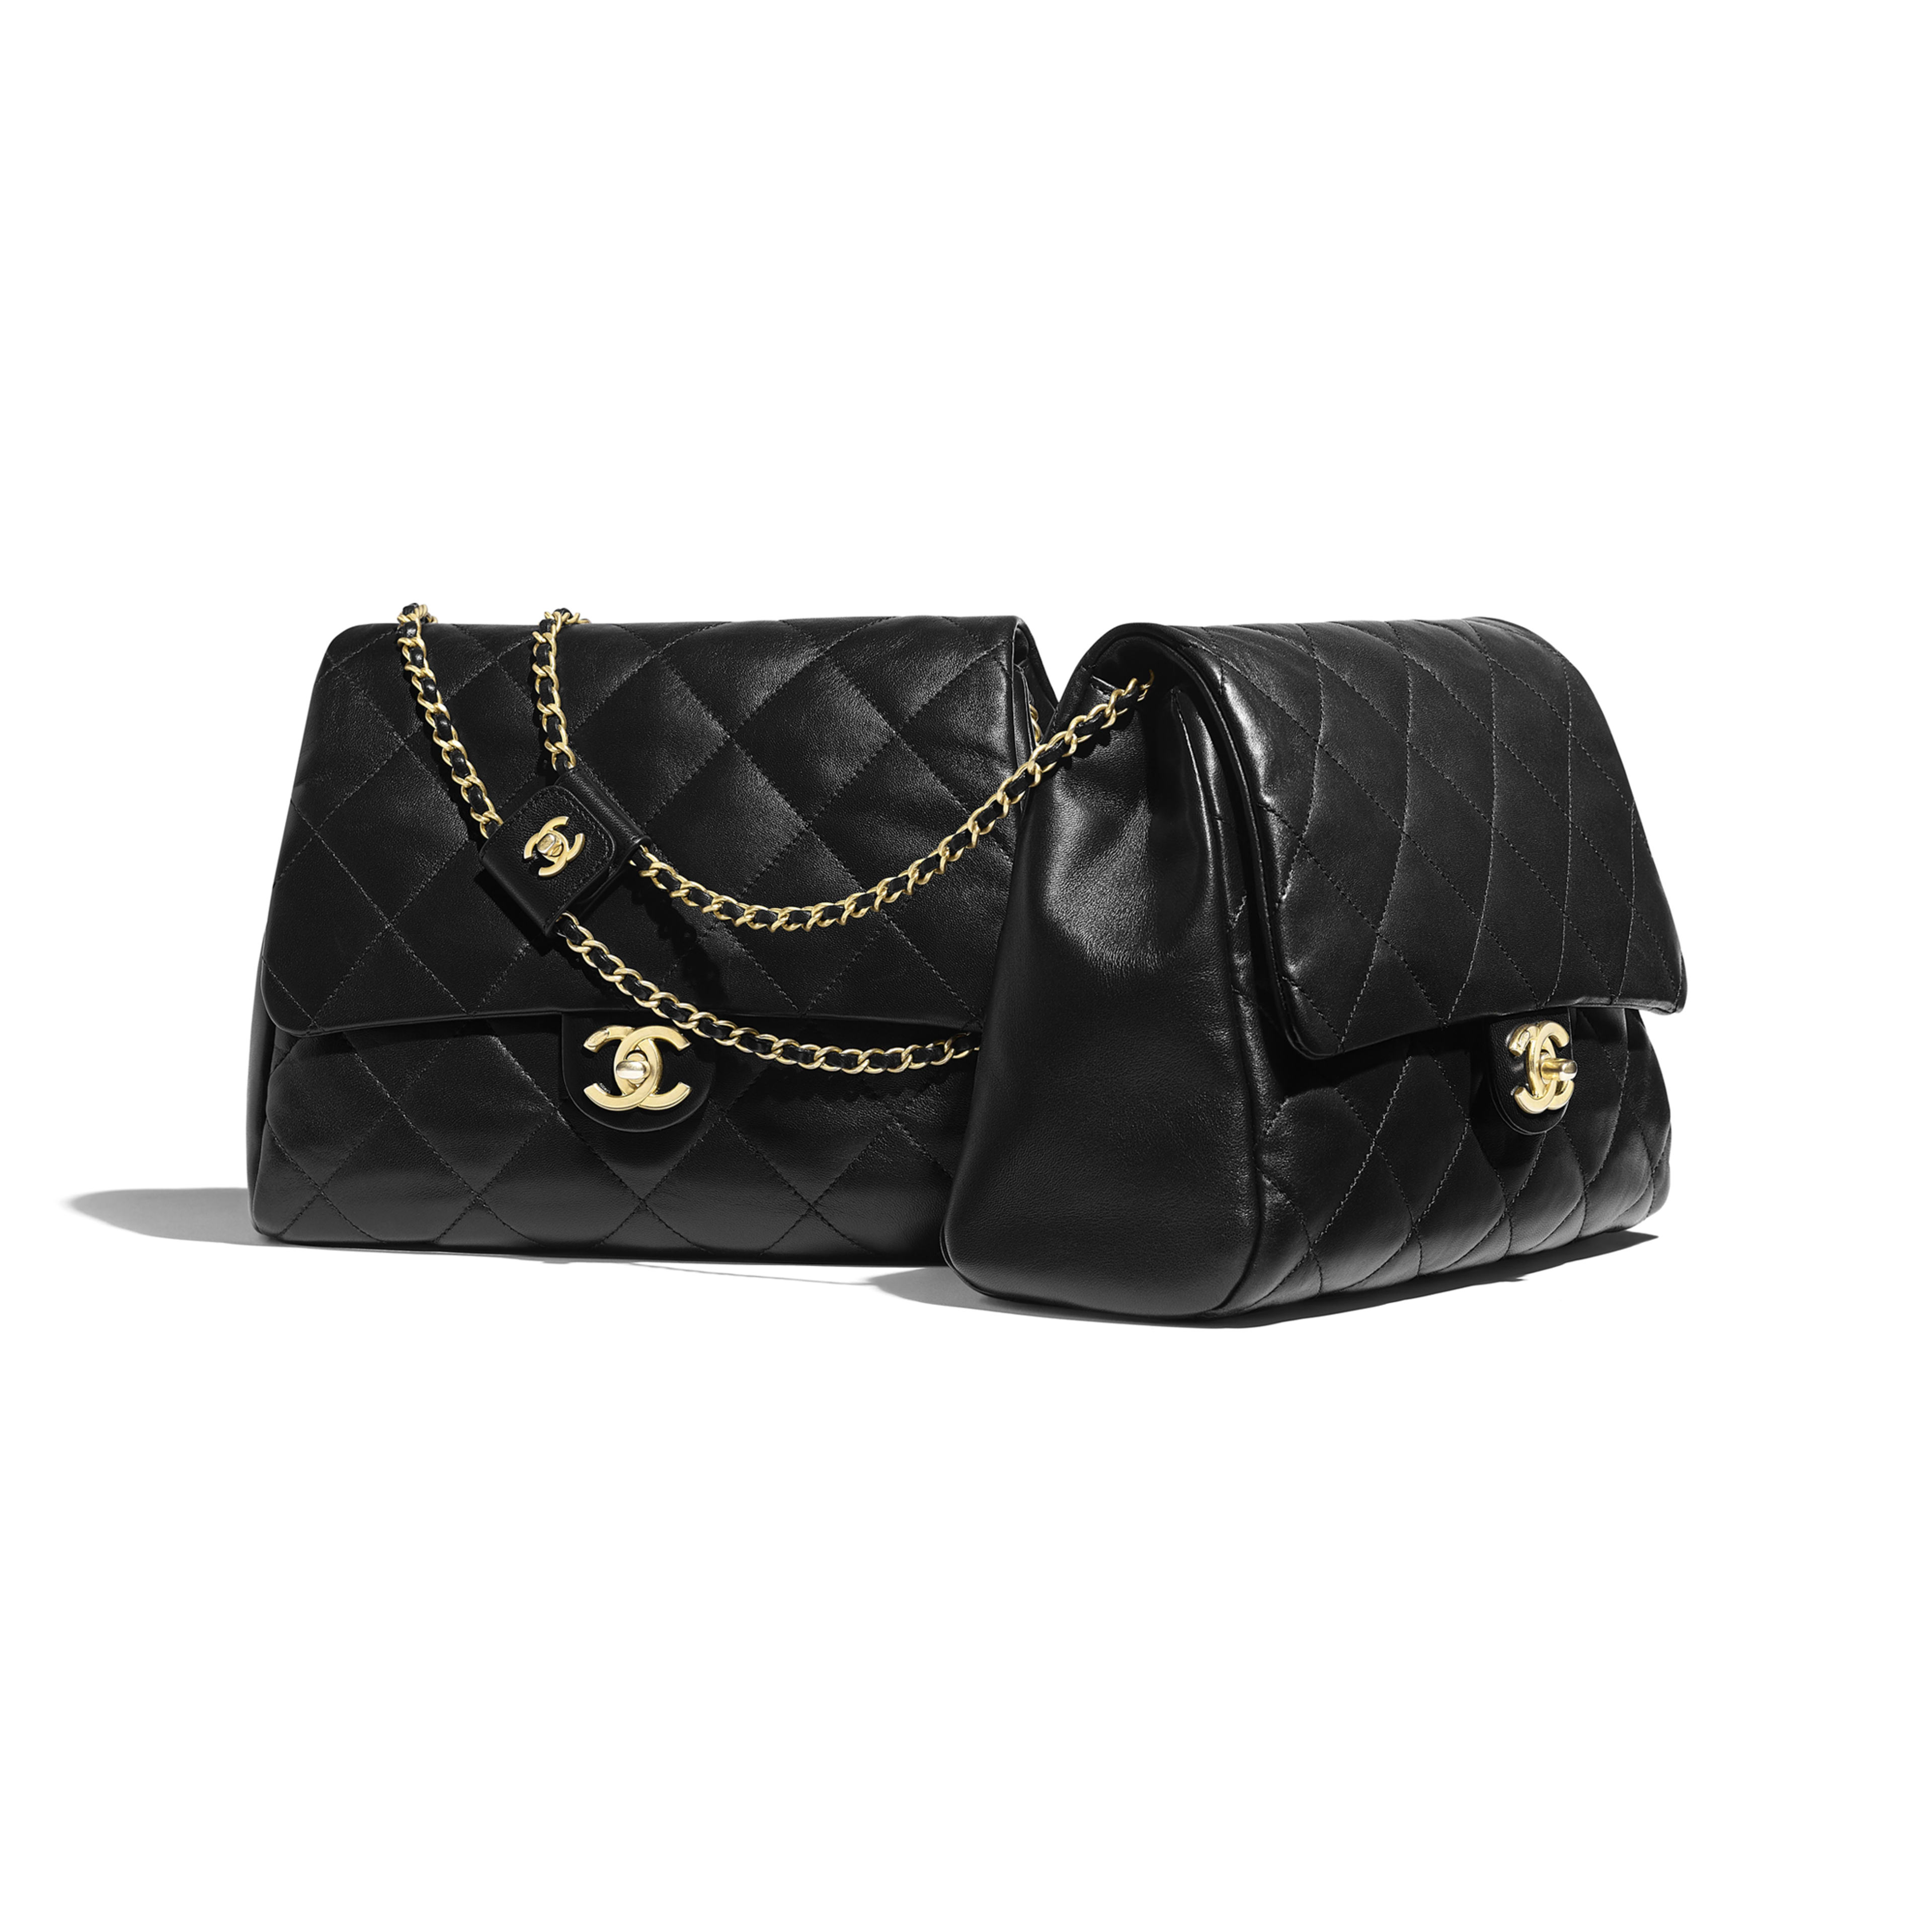 Lambskin & Gold-Tone Metal Black Large Side-Packs | CHANEL